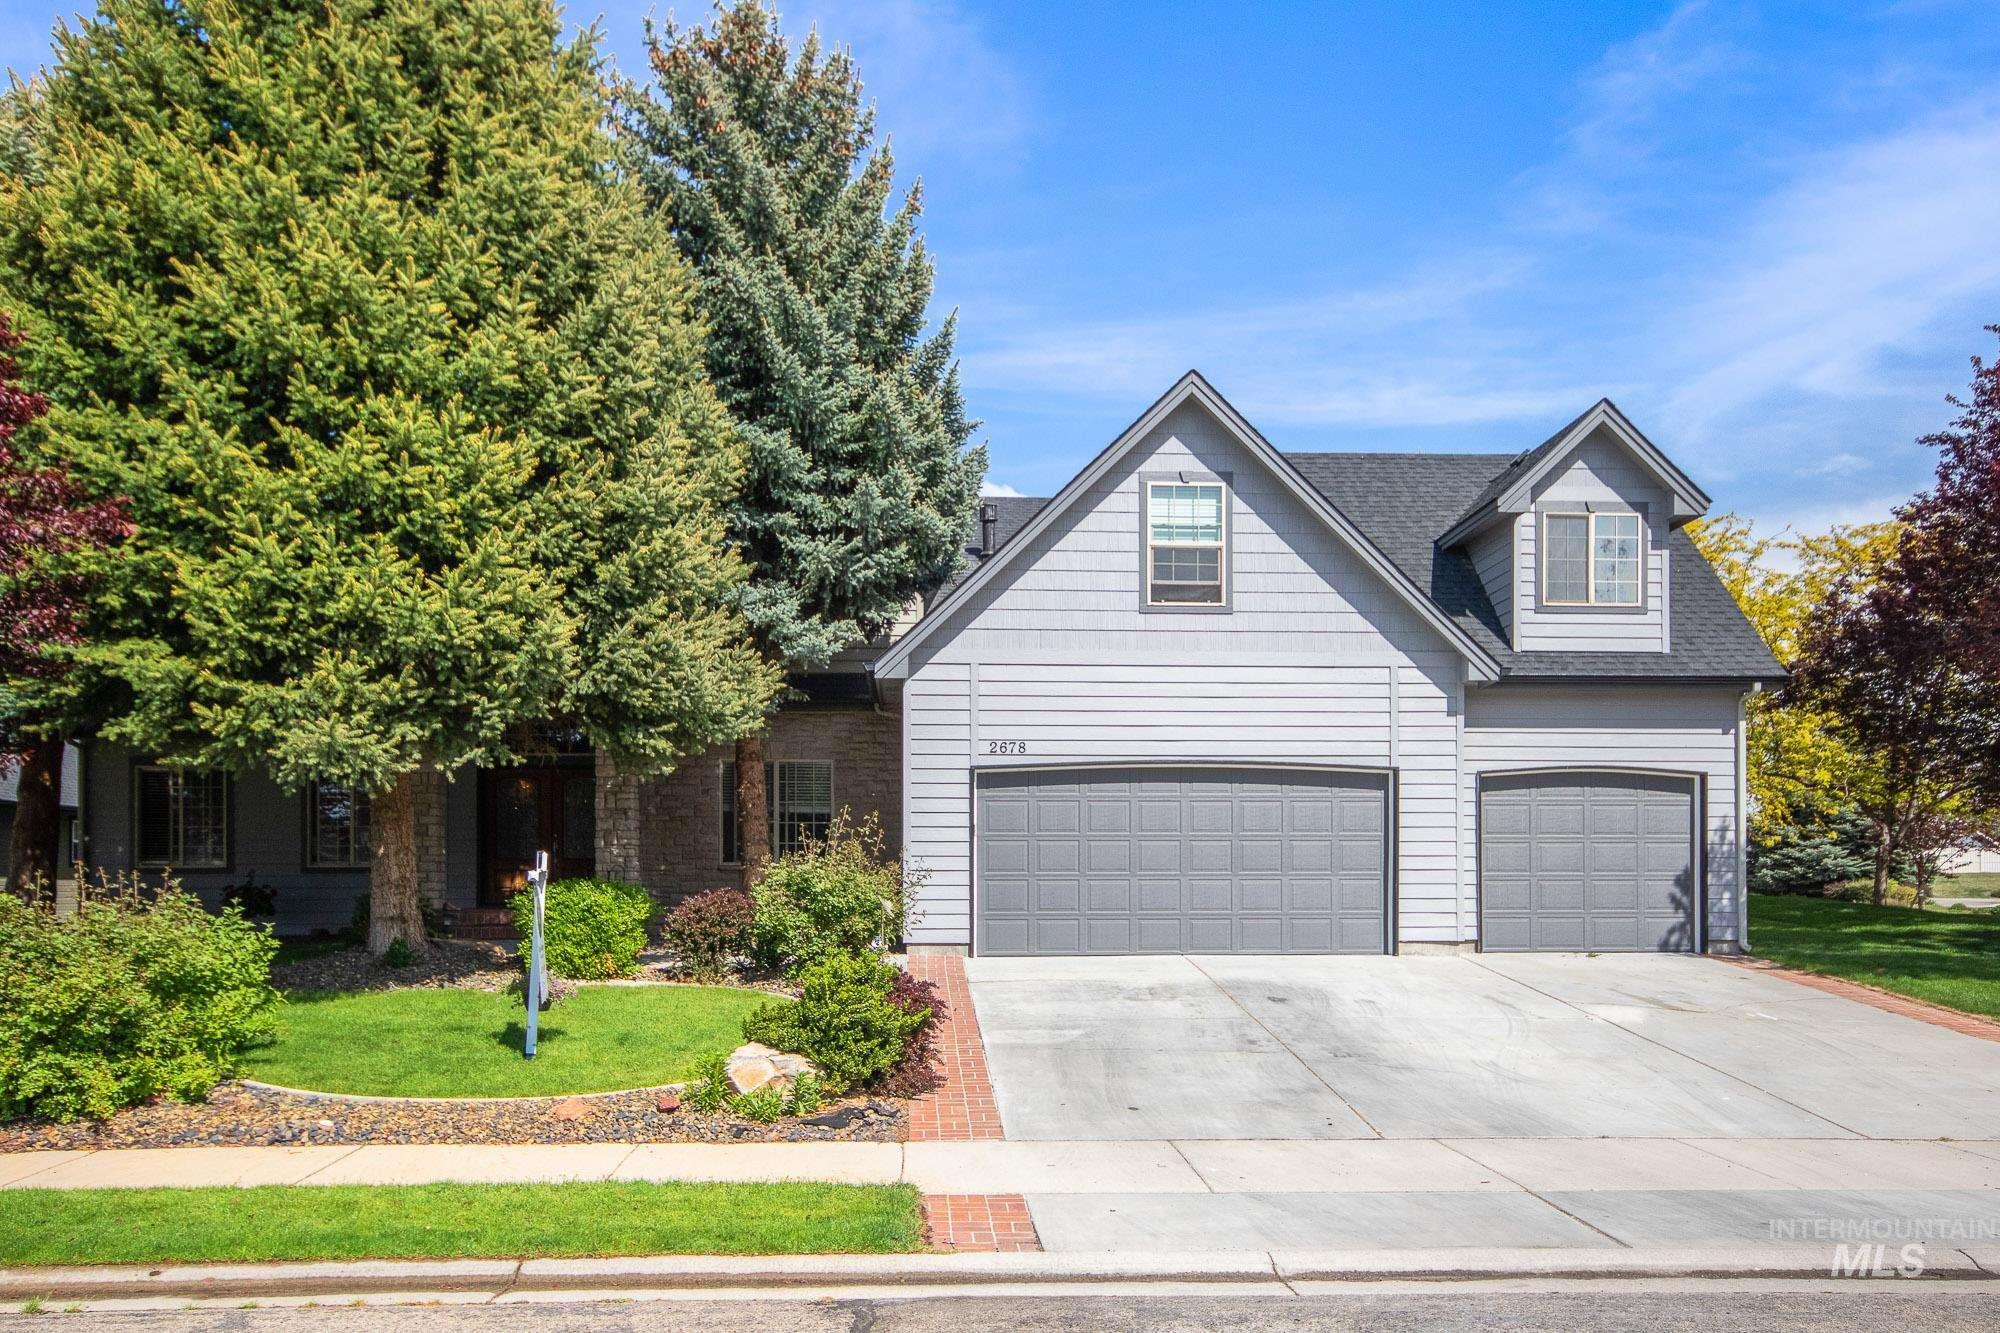 2678 S Hood Ranch Pl Property Photo - Meridian, ID real estate listing